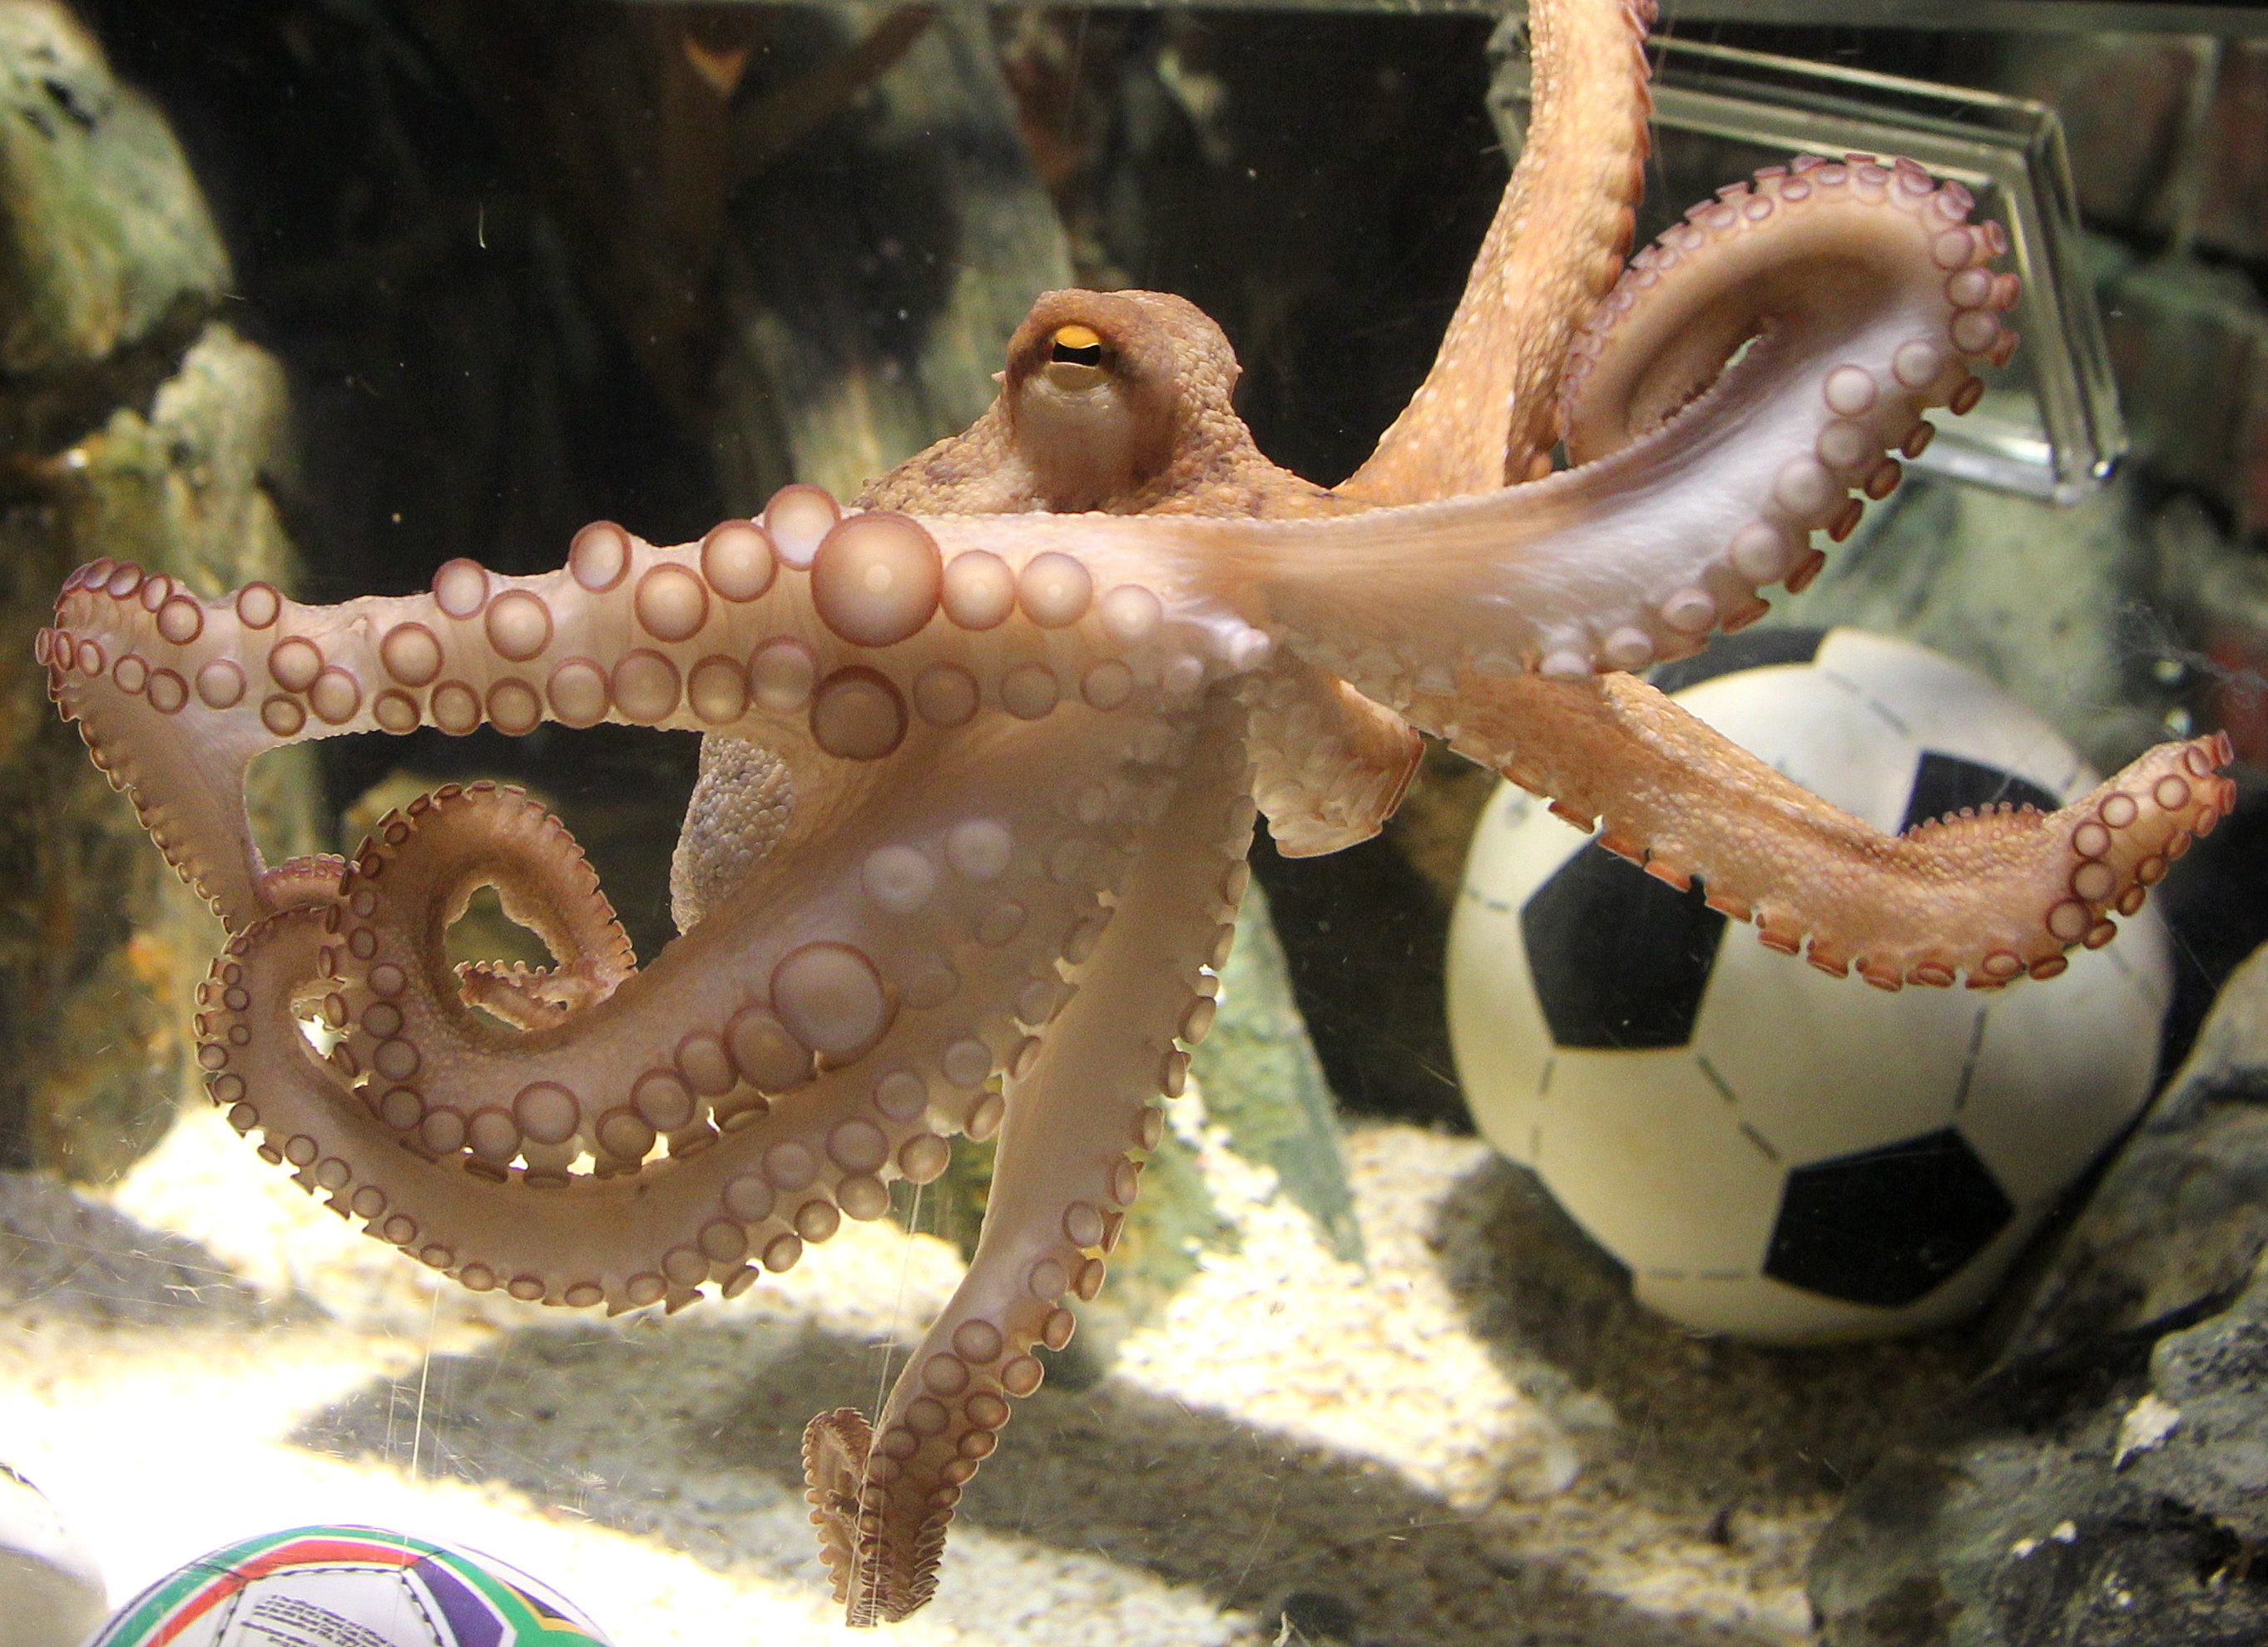 'Psychic' World Cup Octopus Killed and Sold for Meat